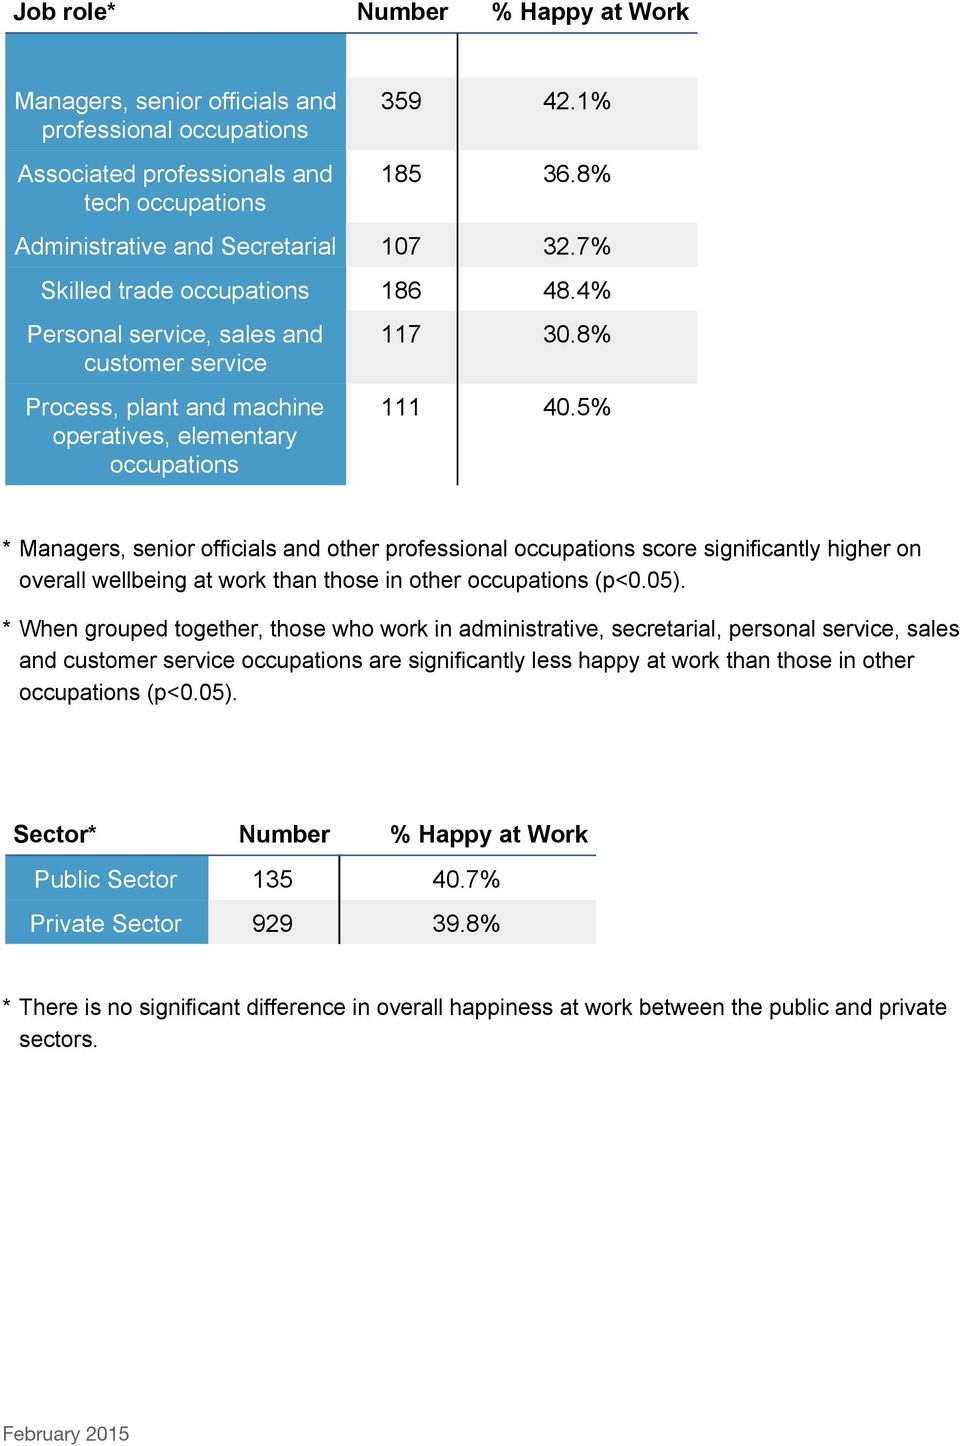 5% * Managers, senior officials and other professional occupations score significantly higher on overall wellbeing at work than those in other occupations (p<0.05).